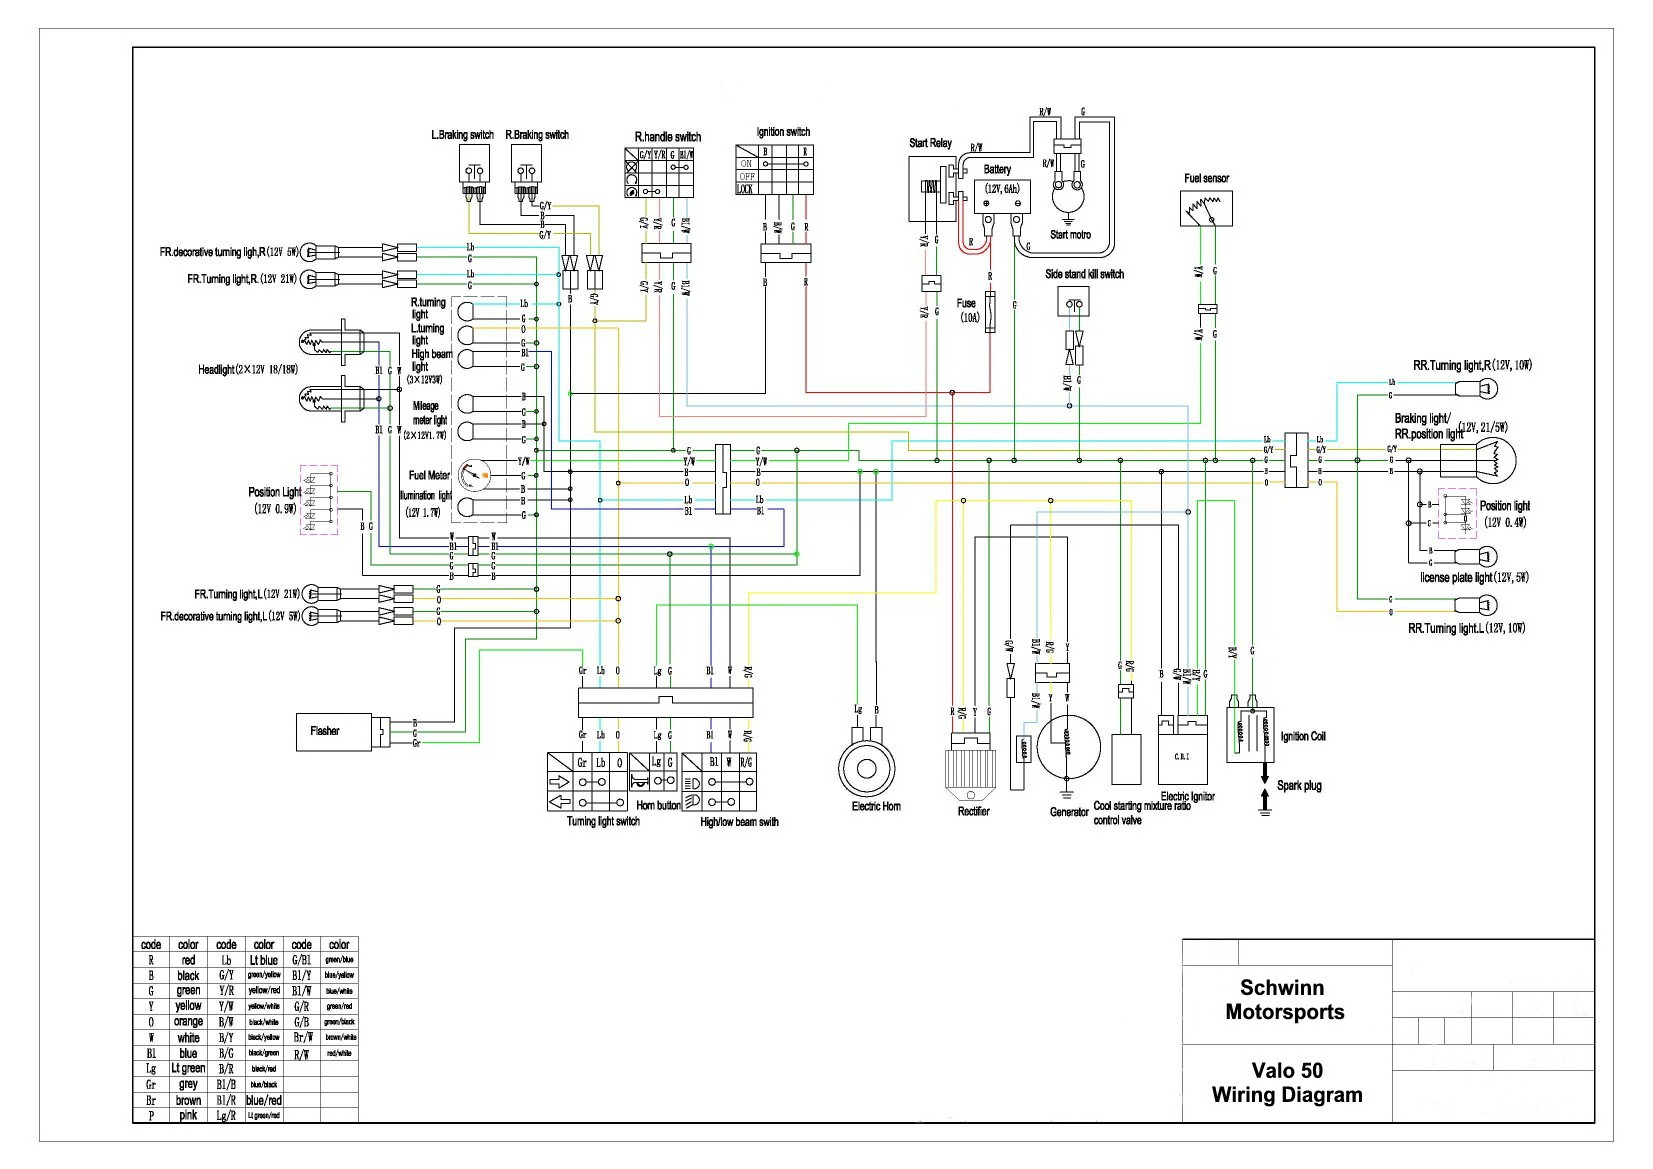 2004 Chrysler 300m Radio Wiring Diagram Trusted Diagrams U2022 For Free 2000 Complaints 2002 Repair Manual